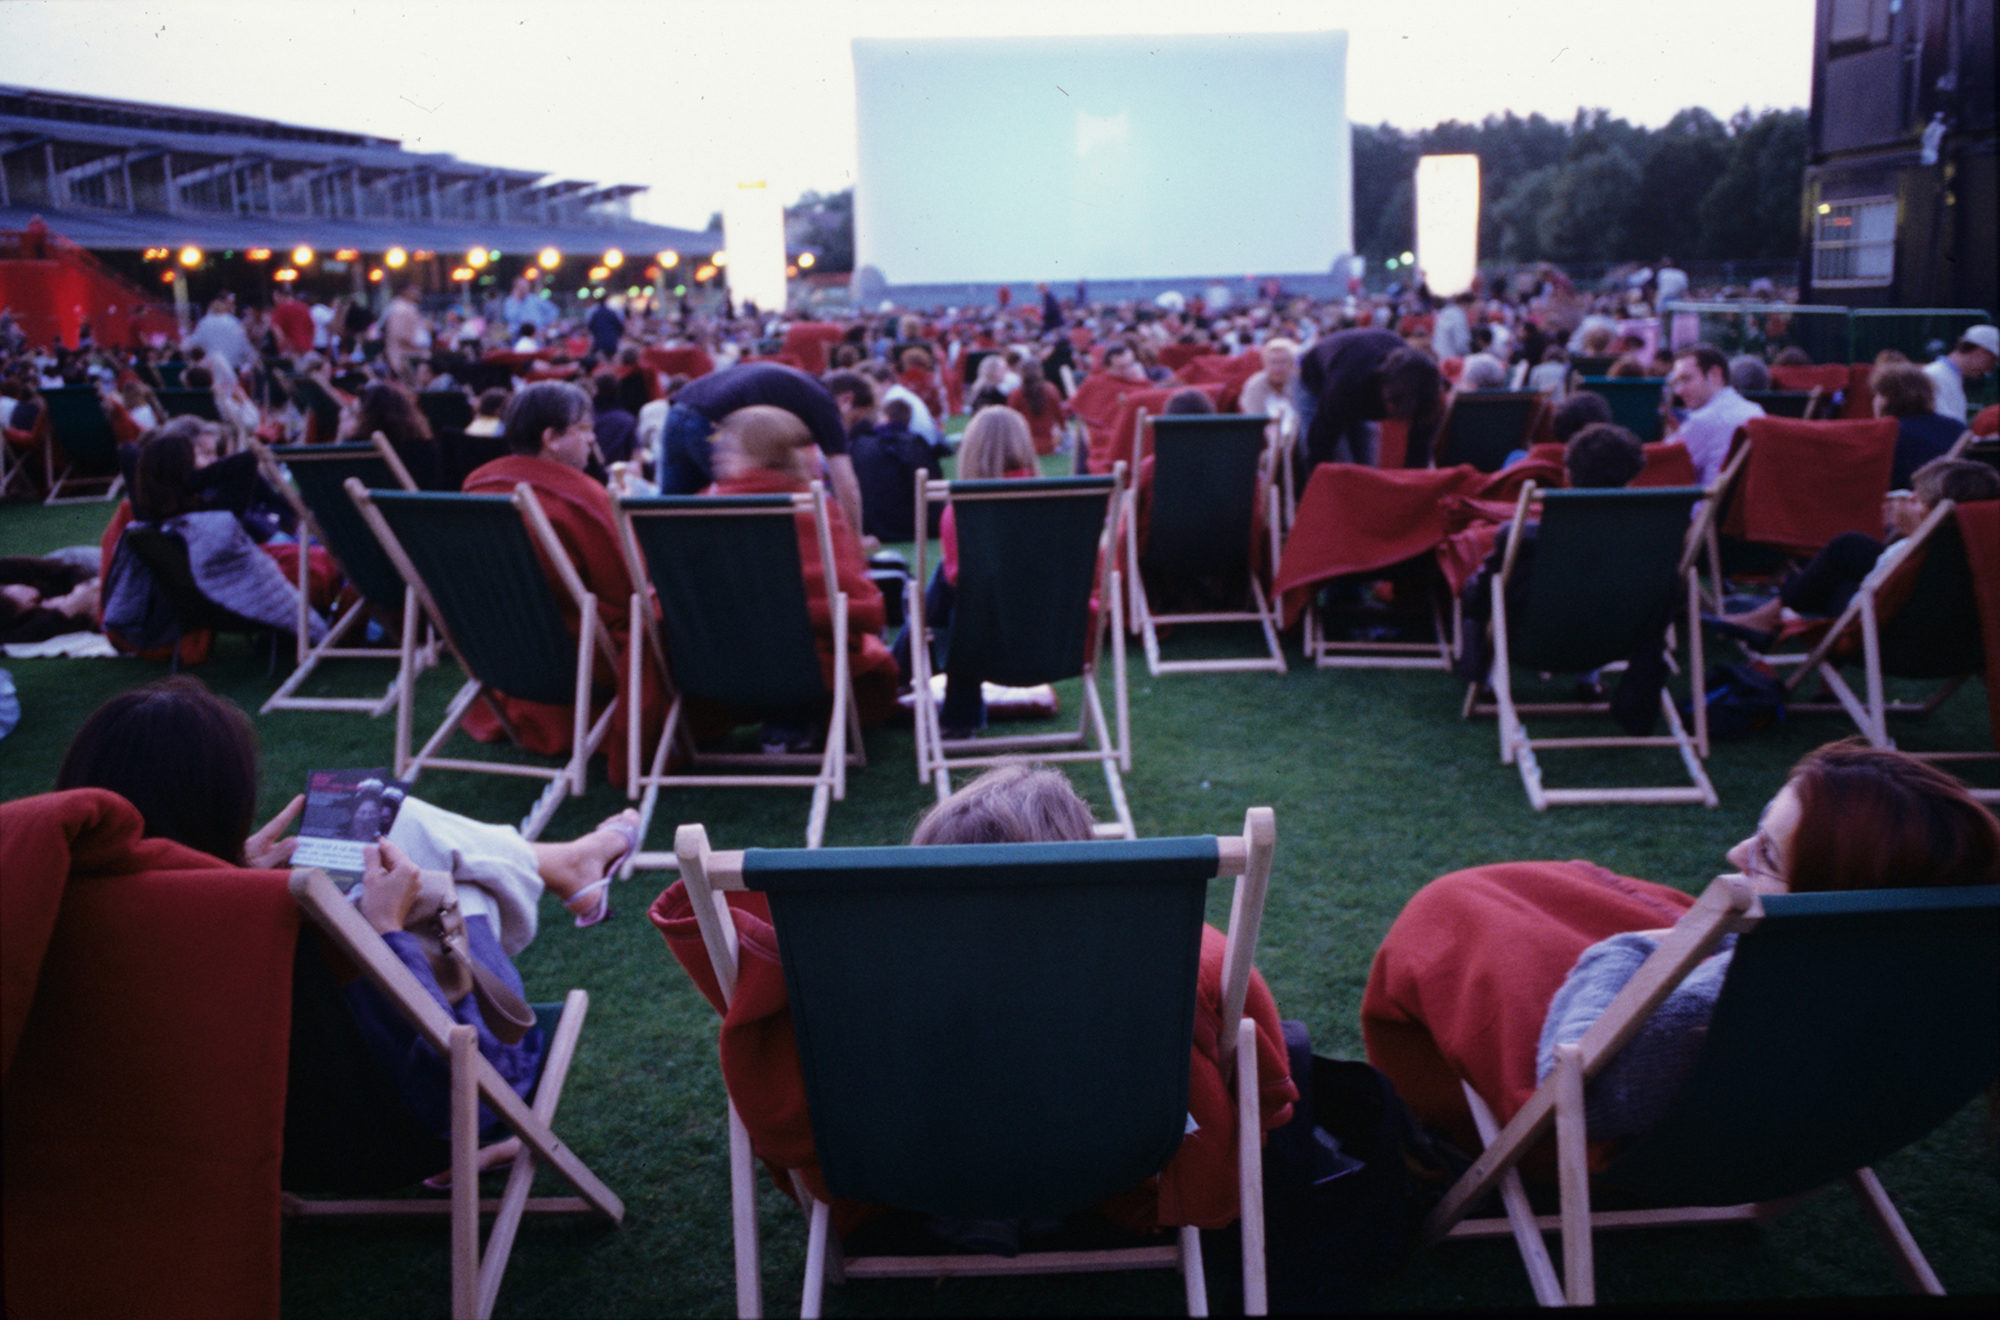 HiP Paris Blog's go-to tanning spot in Paris is the Villette Park, which also does open-air movie screenings in summer and they event provide deck chairs and blankets.